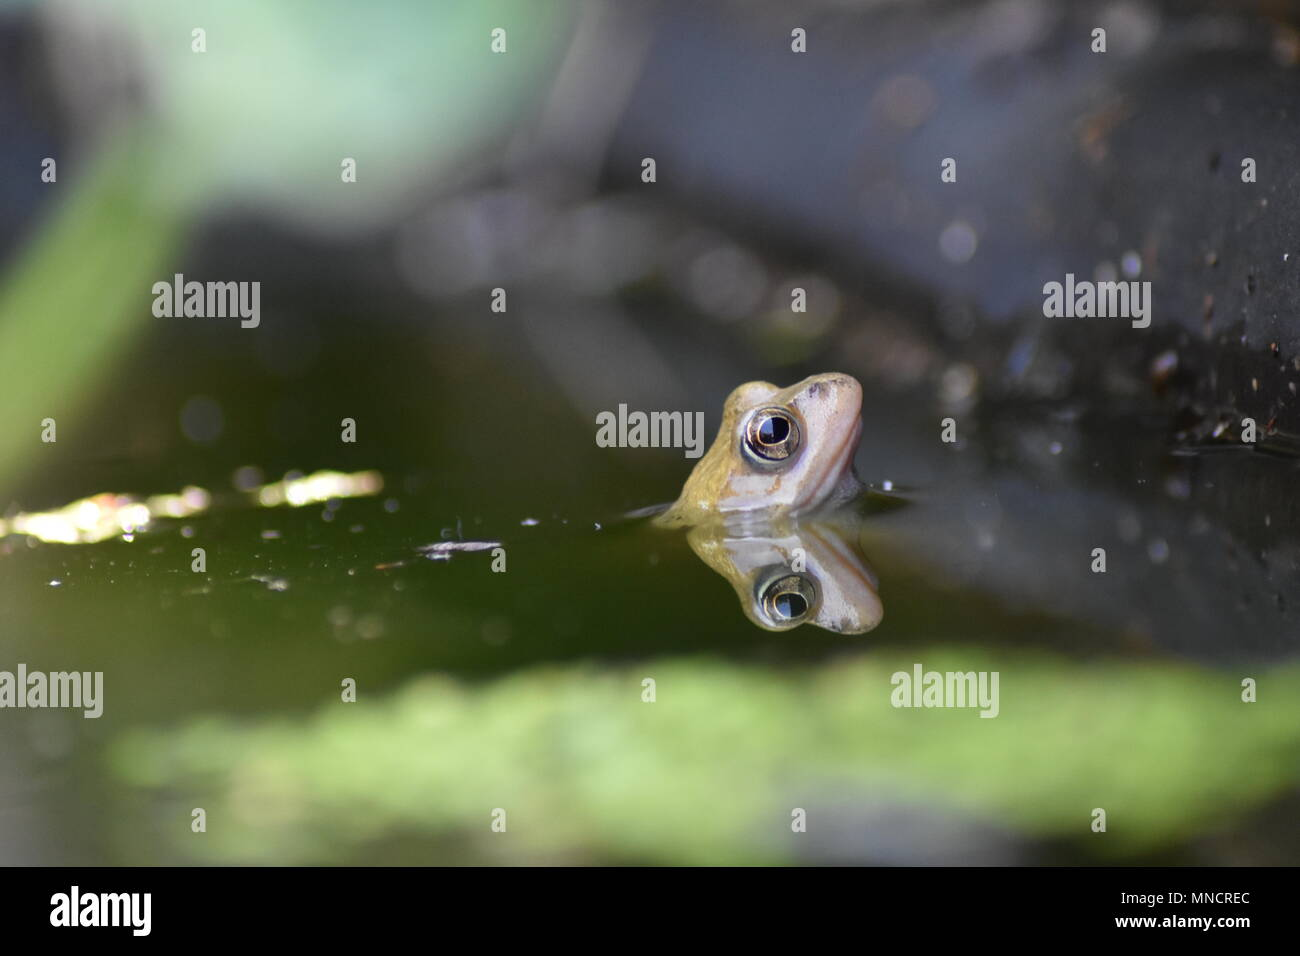 A small Frog in a Pond - Stock Image